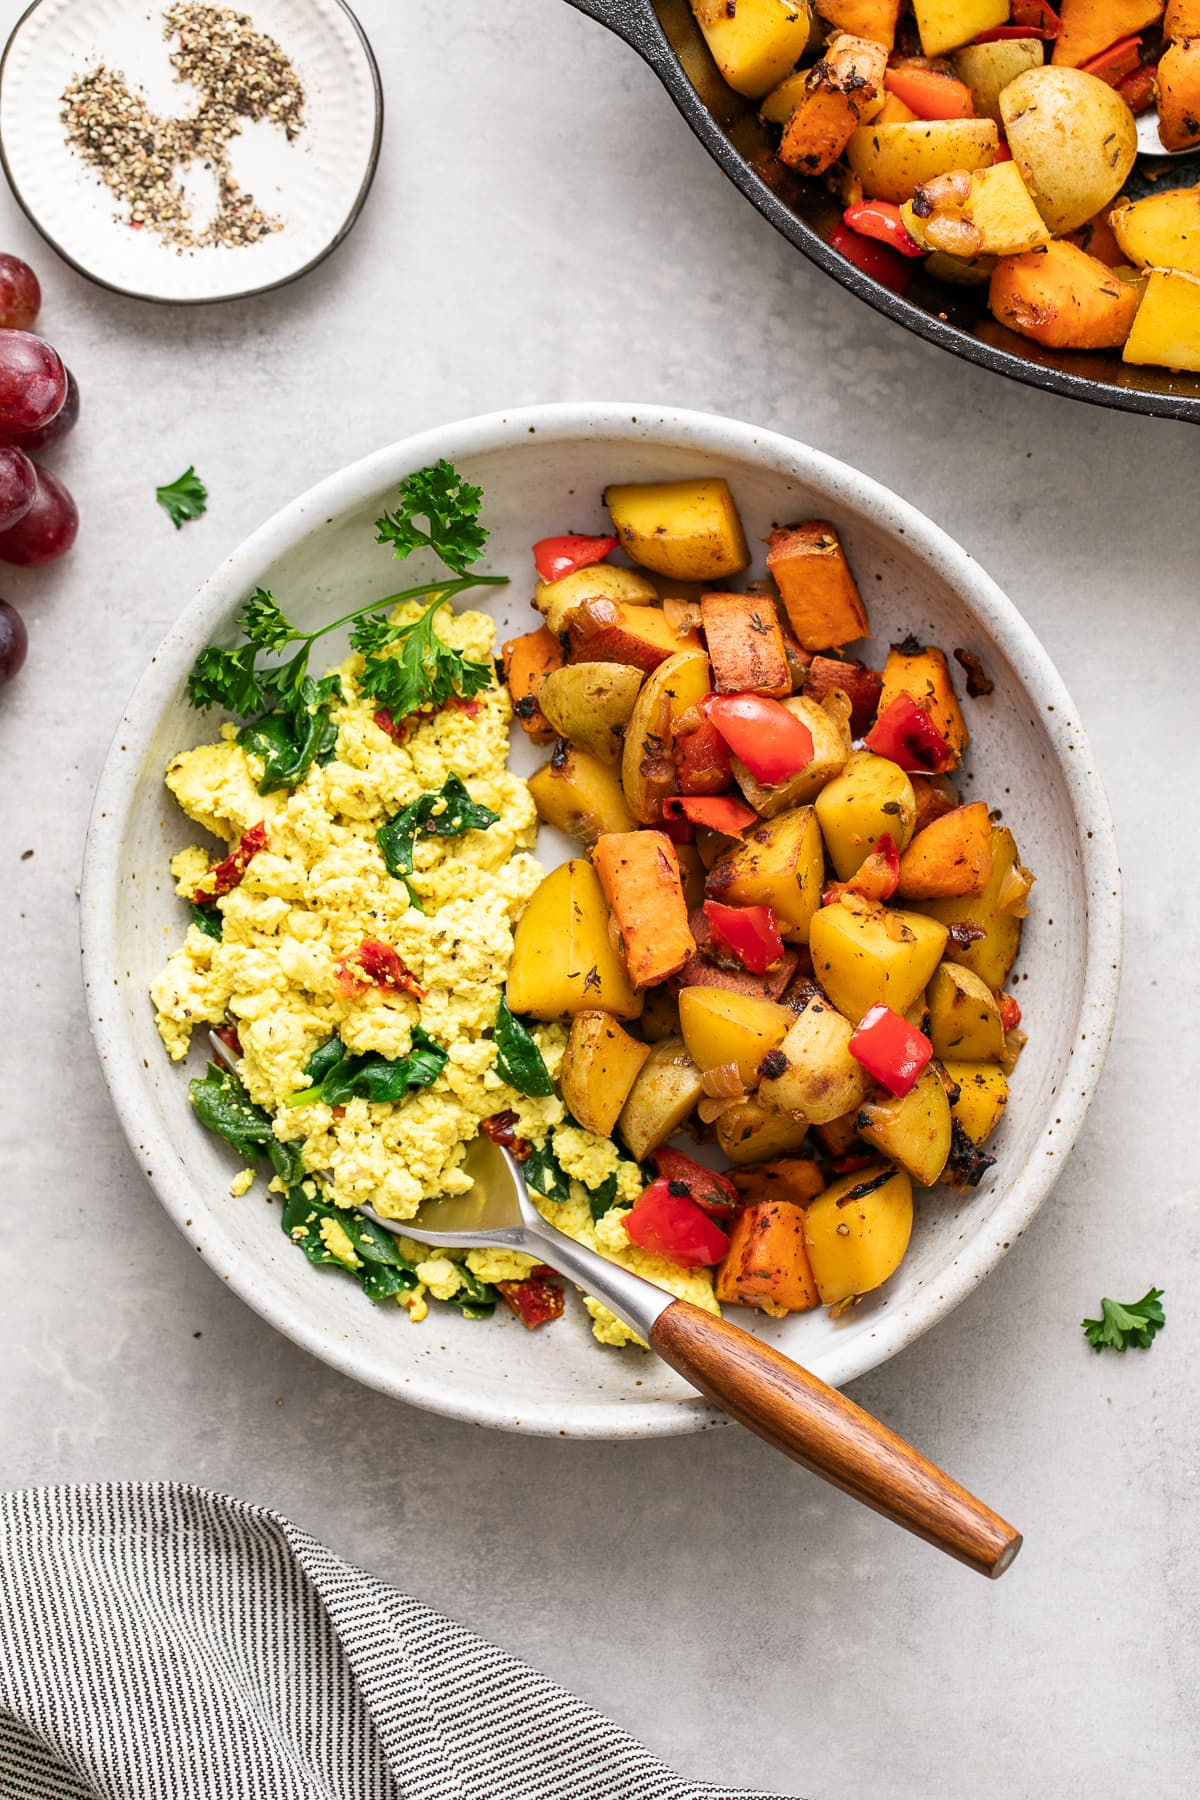 top down view of a bowl with serving of home fries and tofu scramble with items surrounding.